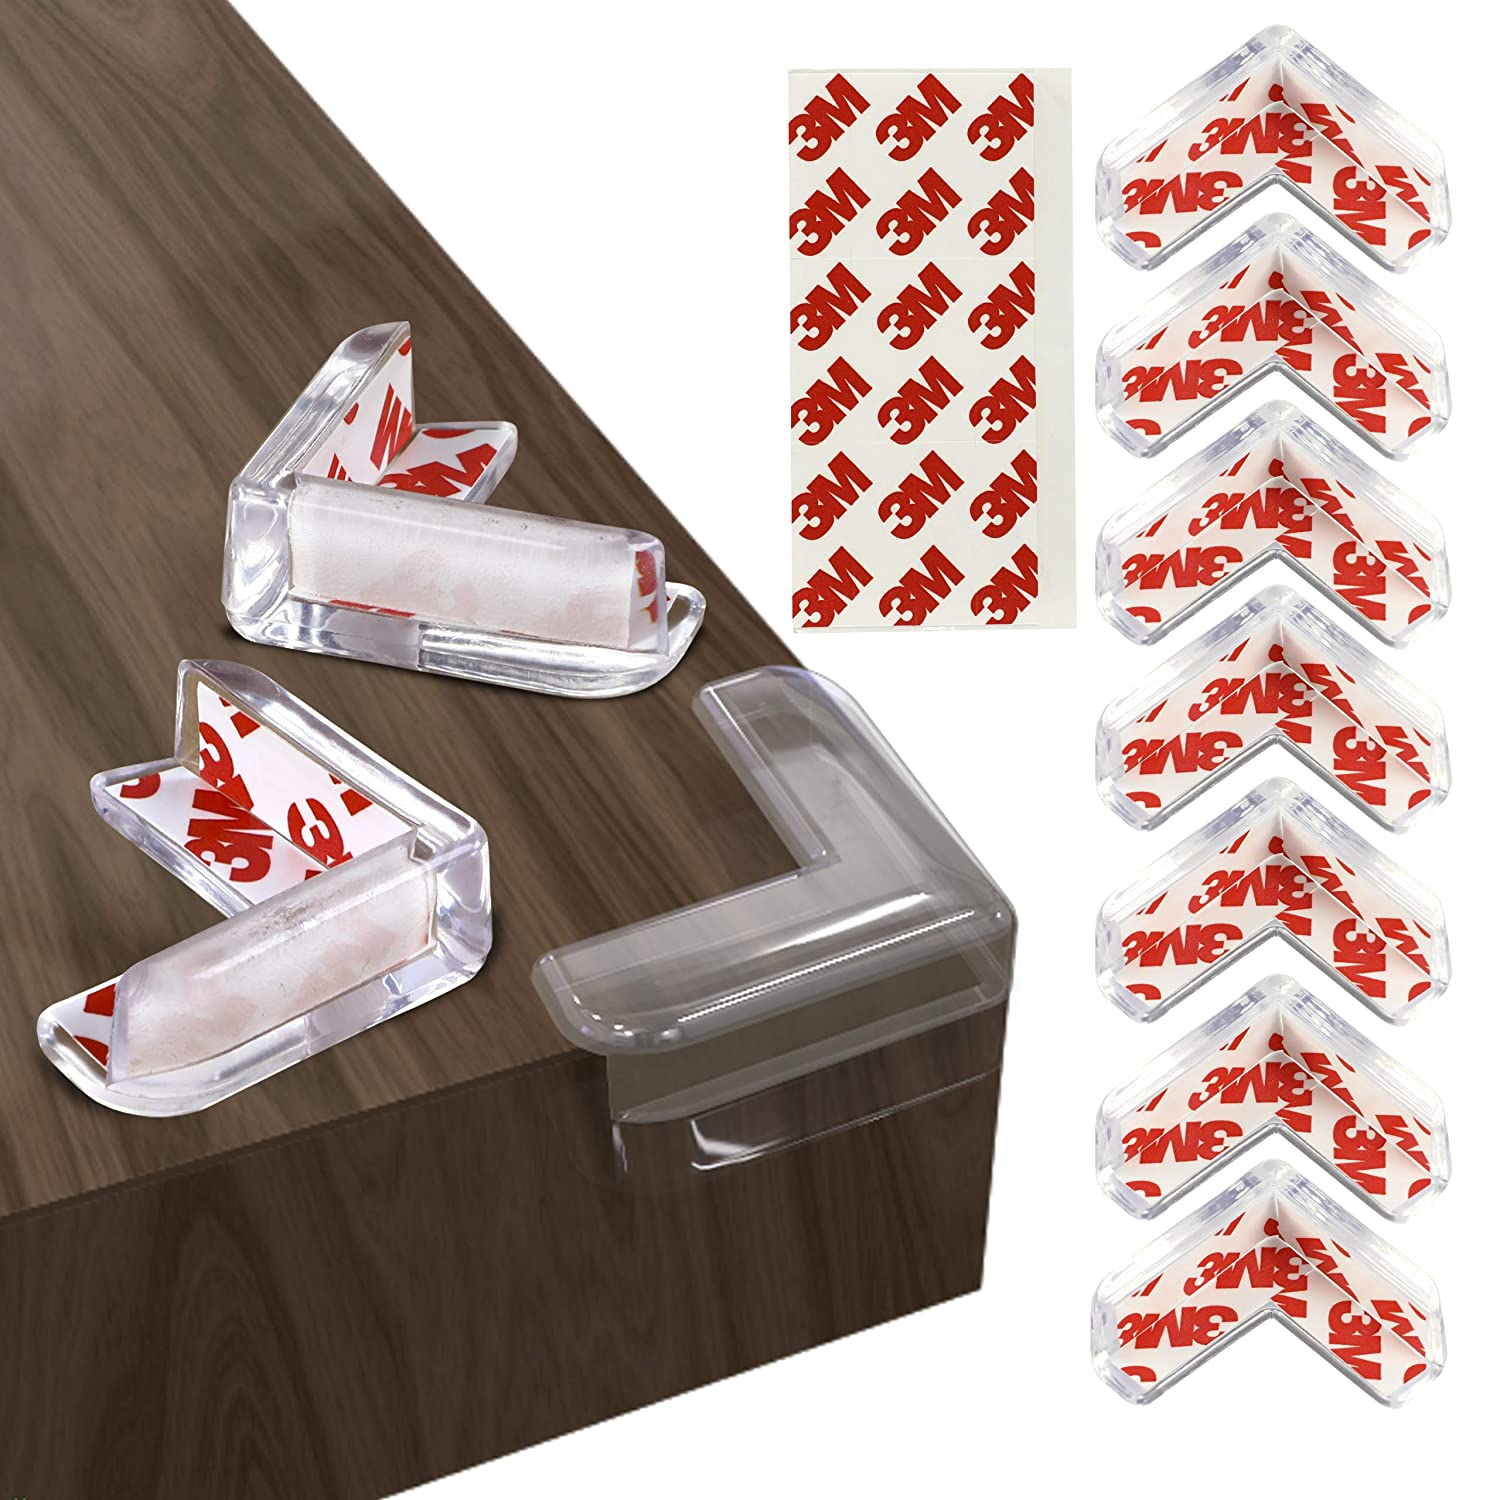 Barkah Corner Protector 12 Pcs Clear Baby Proofing Edge Guards with 3M Adhesive, L-Shaped Soft Cushion Corner Protectors for Furniture, Durable Adhesive for Child Proof Baby Safety